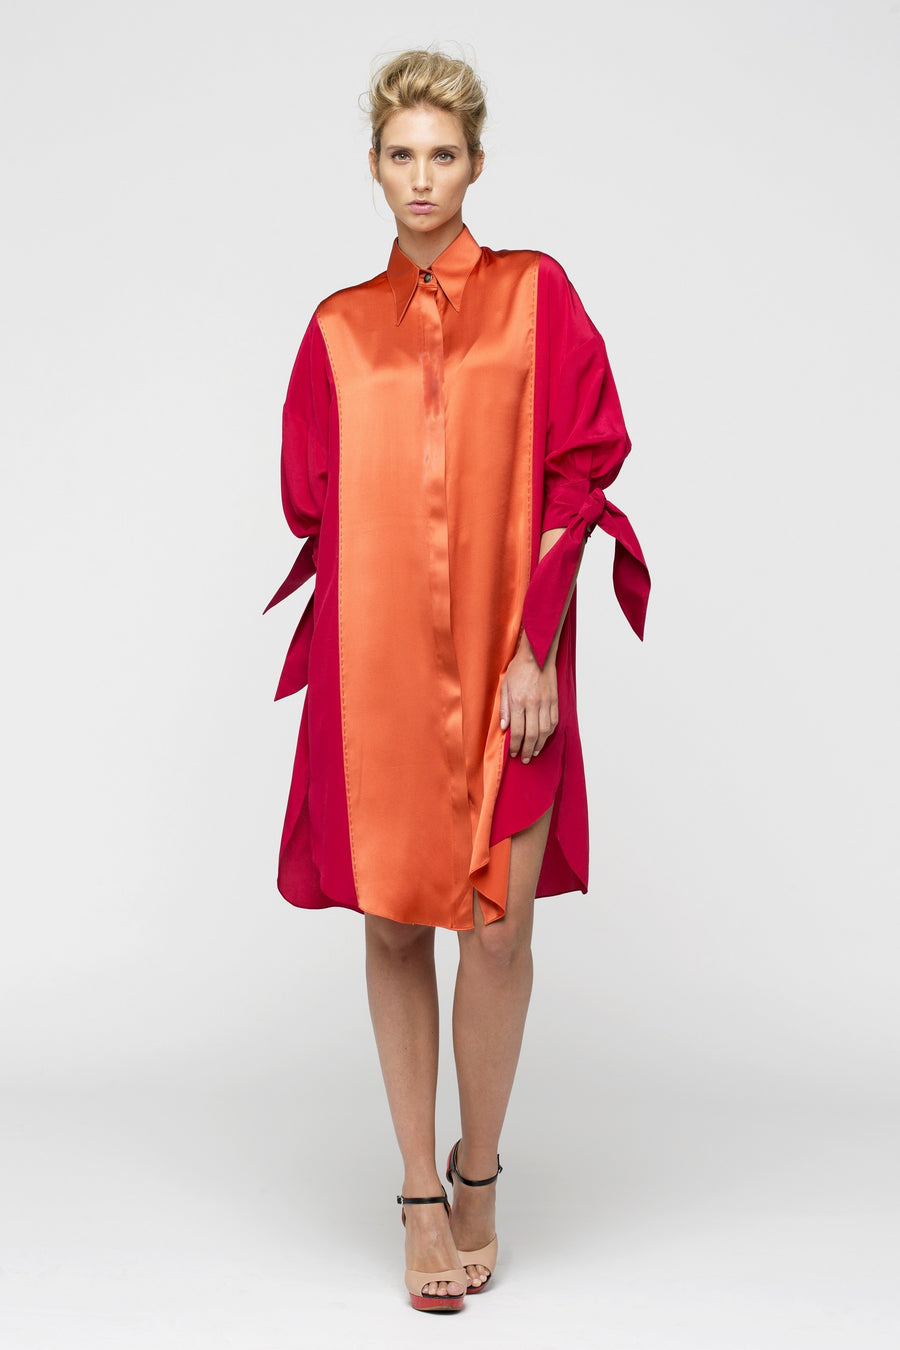 Meridian Satin-Silk Fuschia/Orange Tunic Shirt Women by Lucie Brochard